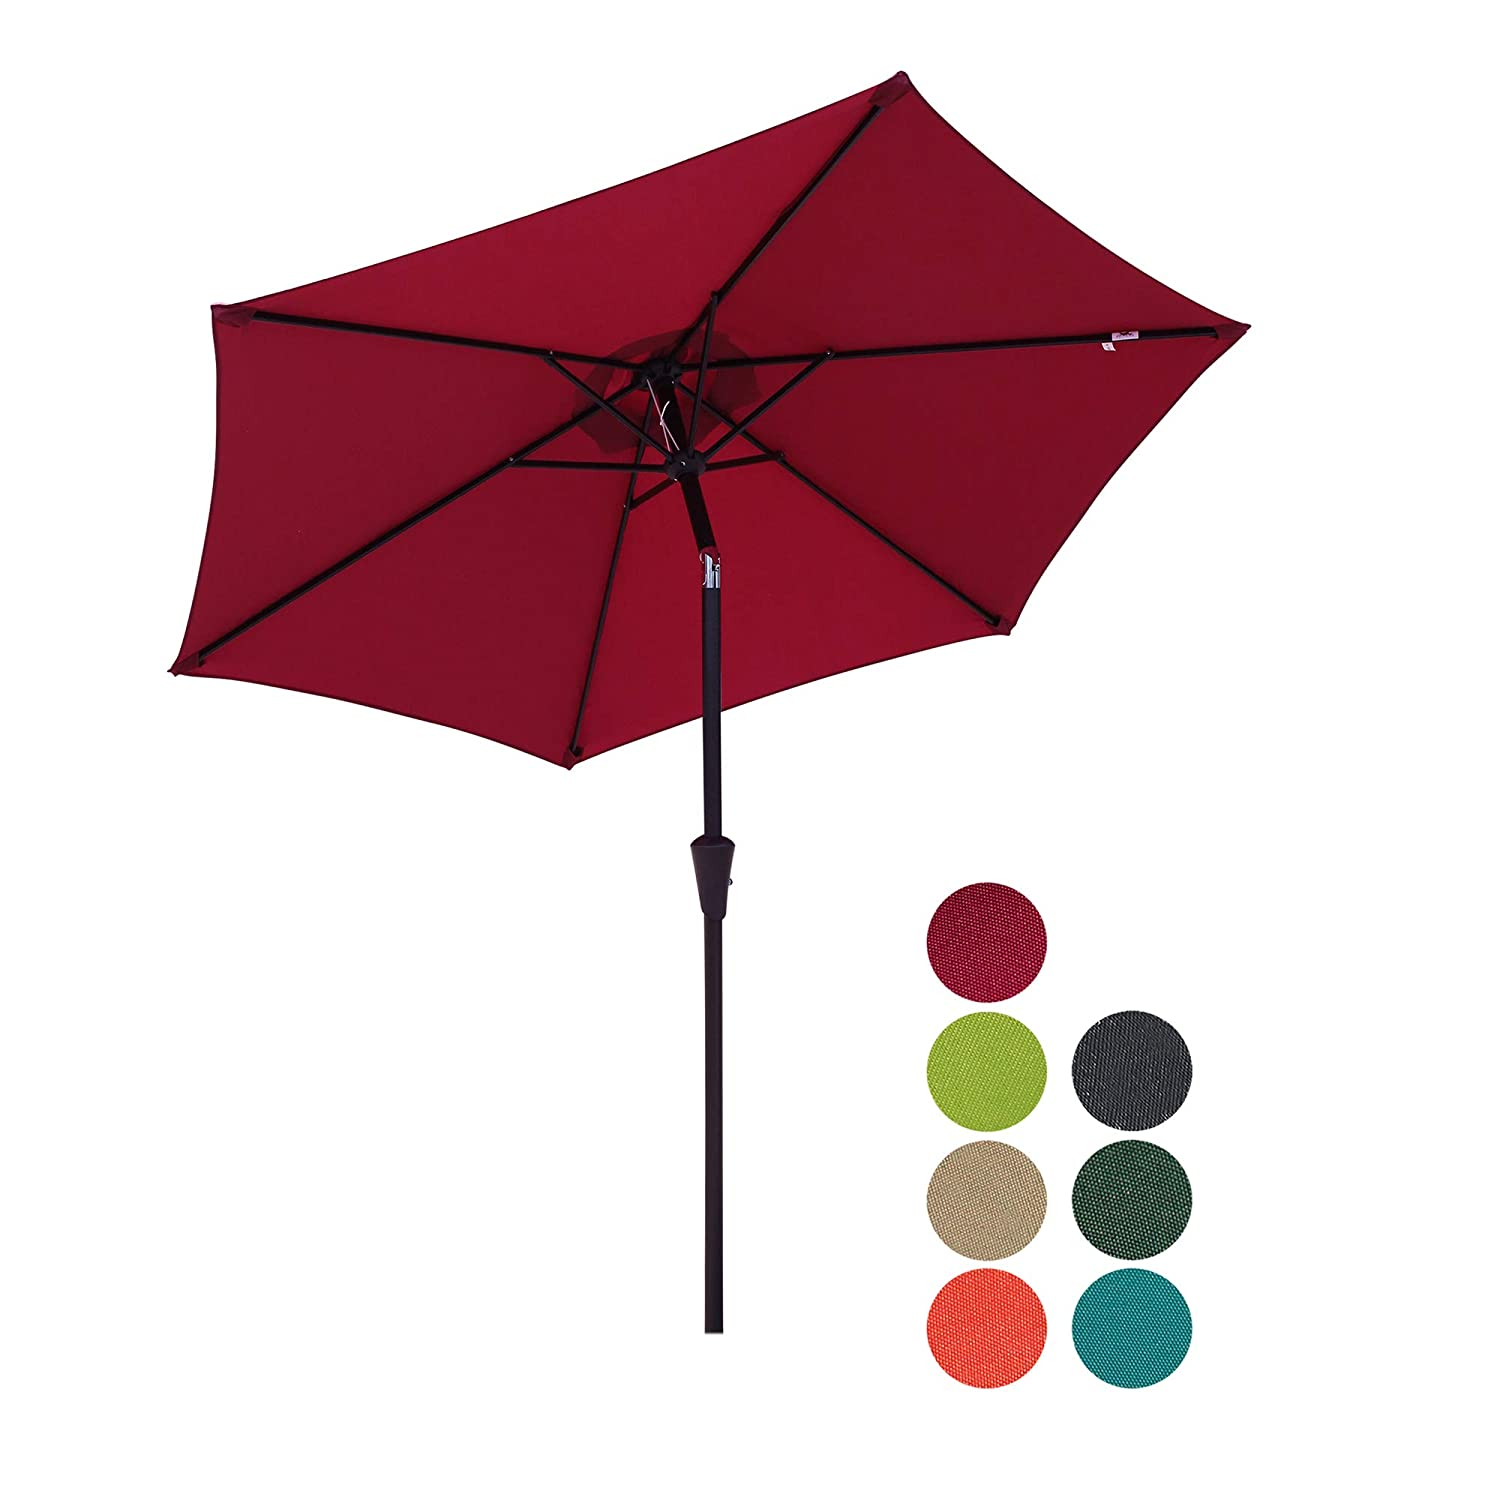 Patiorama 7.5 Feet Outdoor Patio Umbrella with Push-Button Tilt and Crank, 6 Ribs, Polyester Canopy, Burgundy